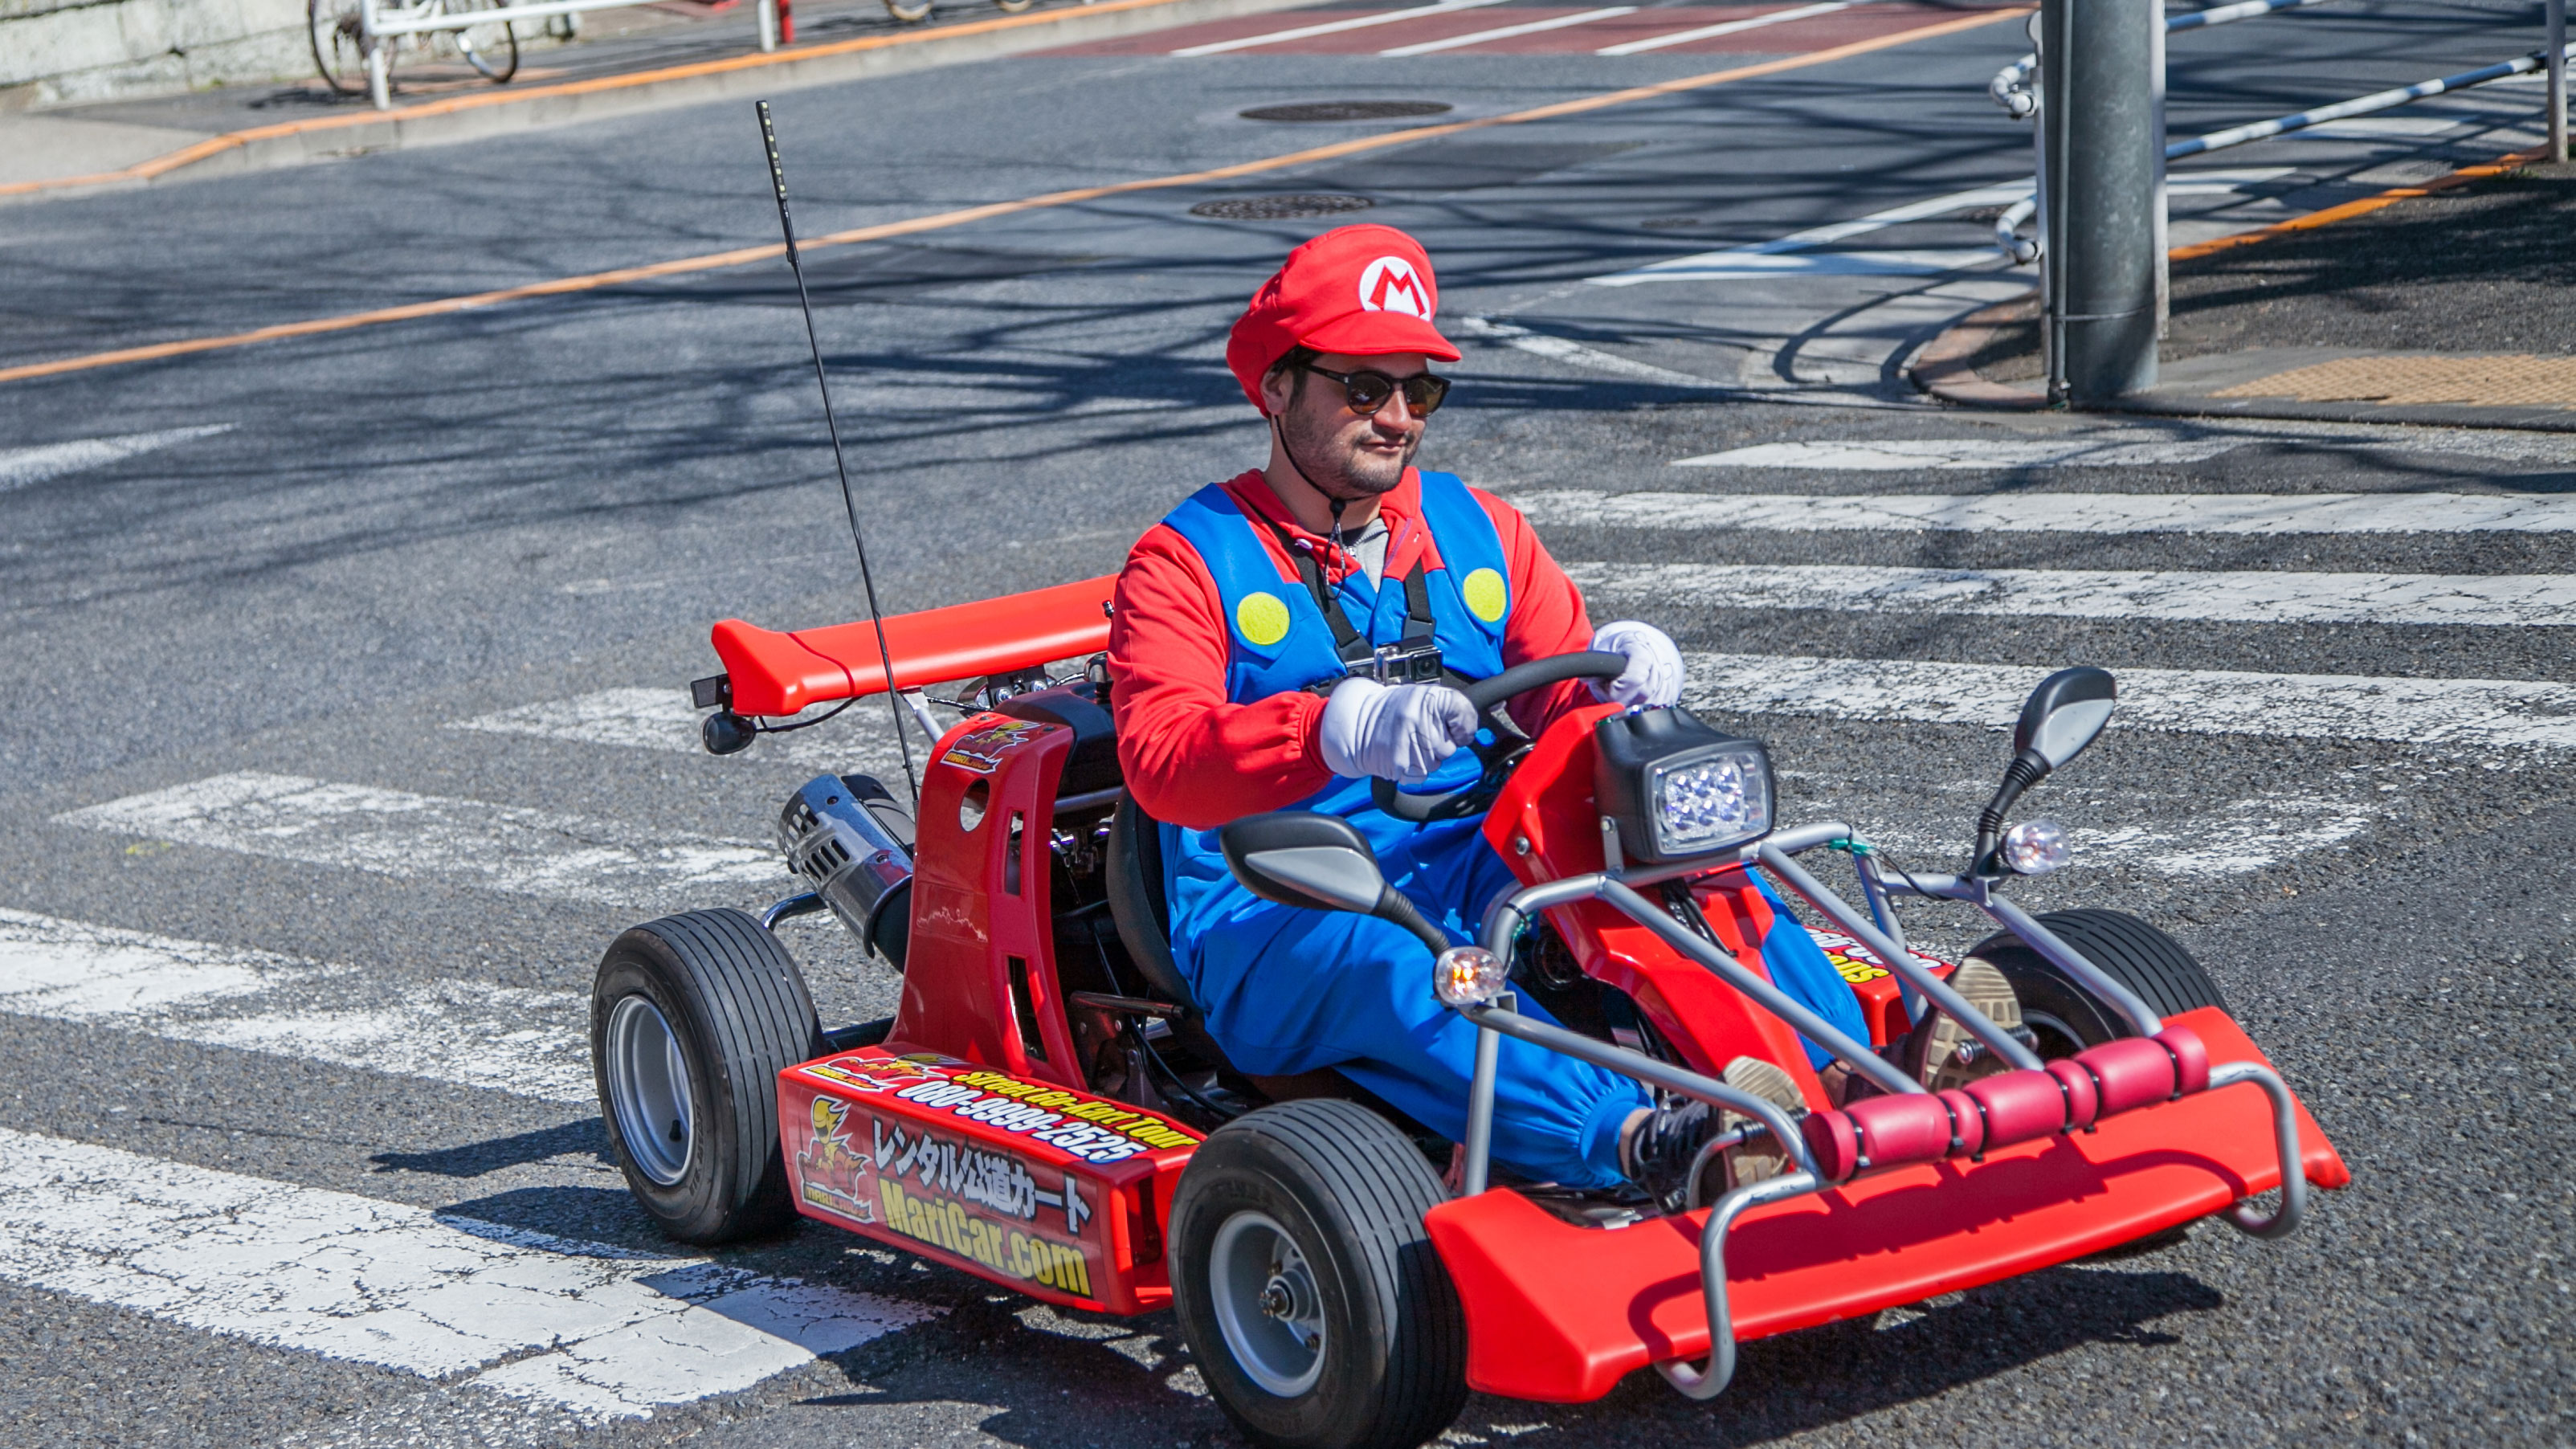 TOKYO,JAPAN - MARCH 12,2017 : Tourist are driving go-karts around on street in Tokyo Japan,This is a favorite activity of tourists.